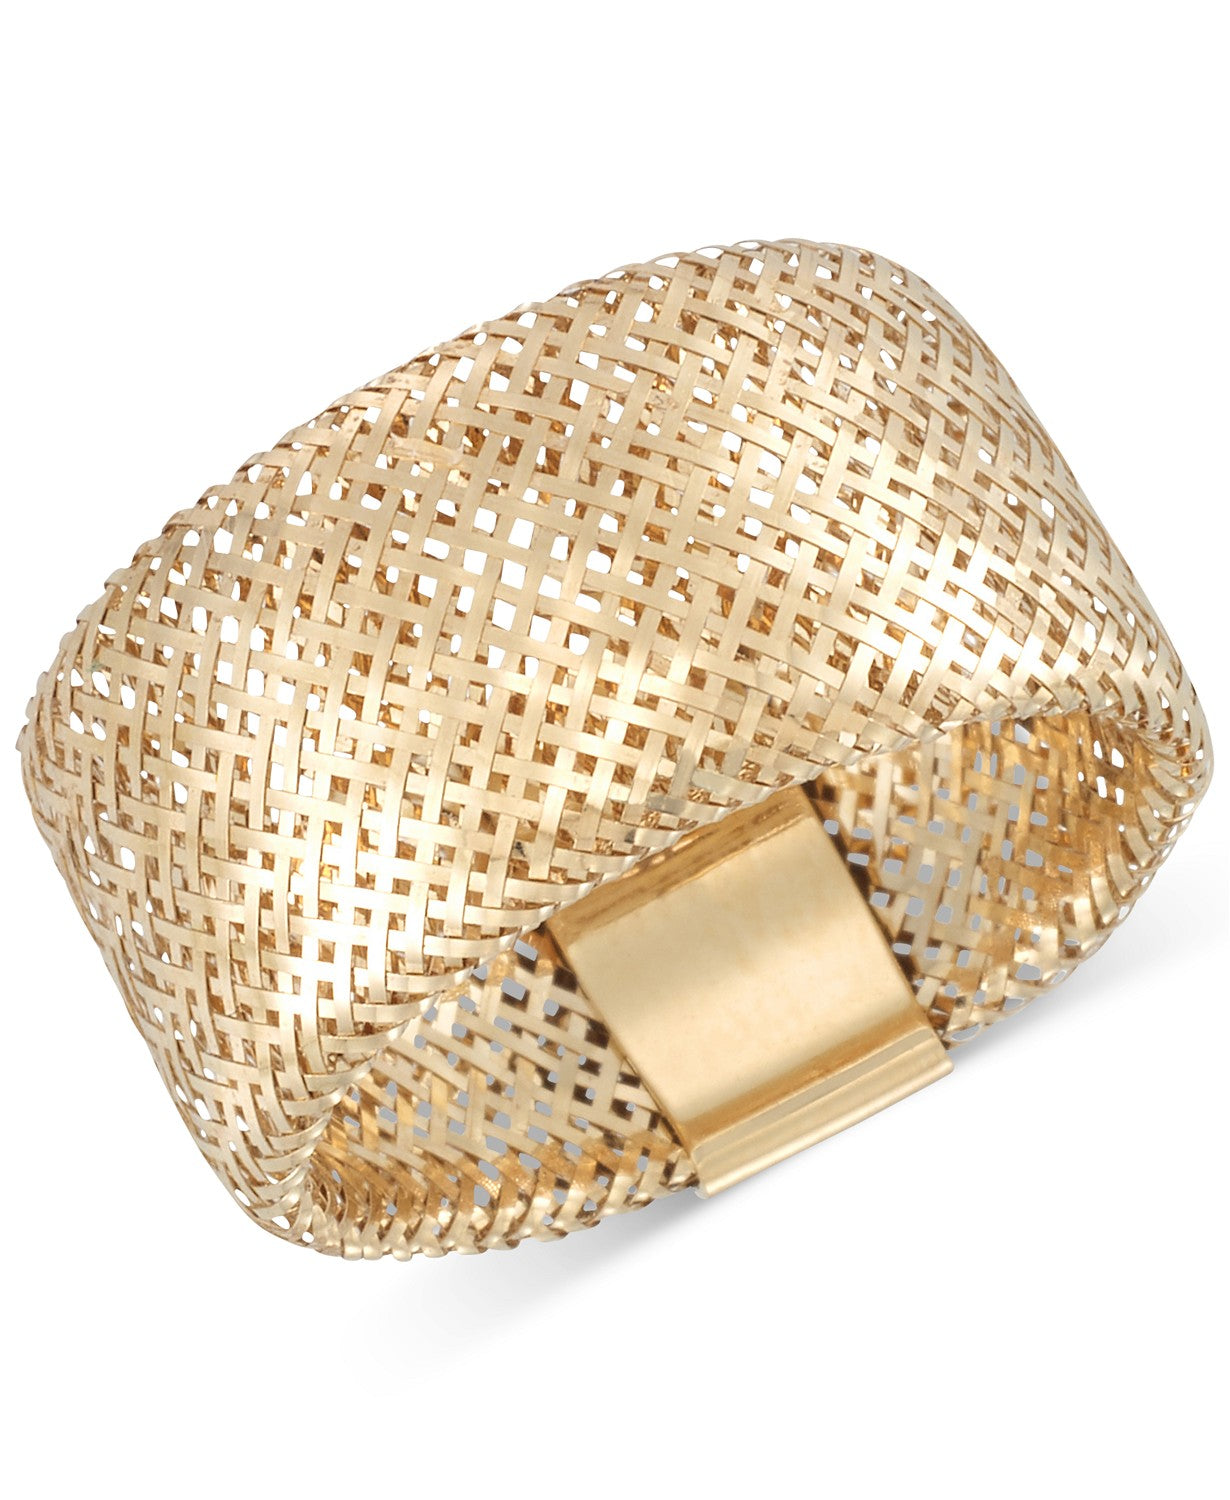 Openwork Mesh Stretch Ring in 14k Gold, Made in Italy